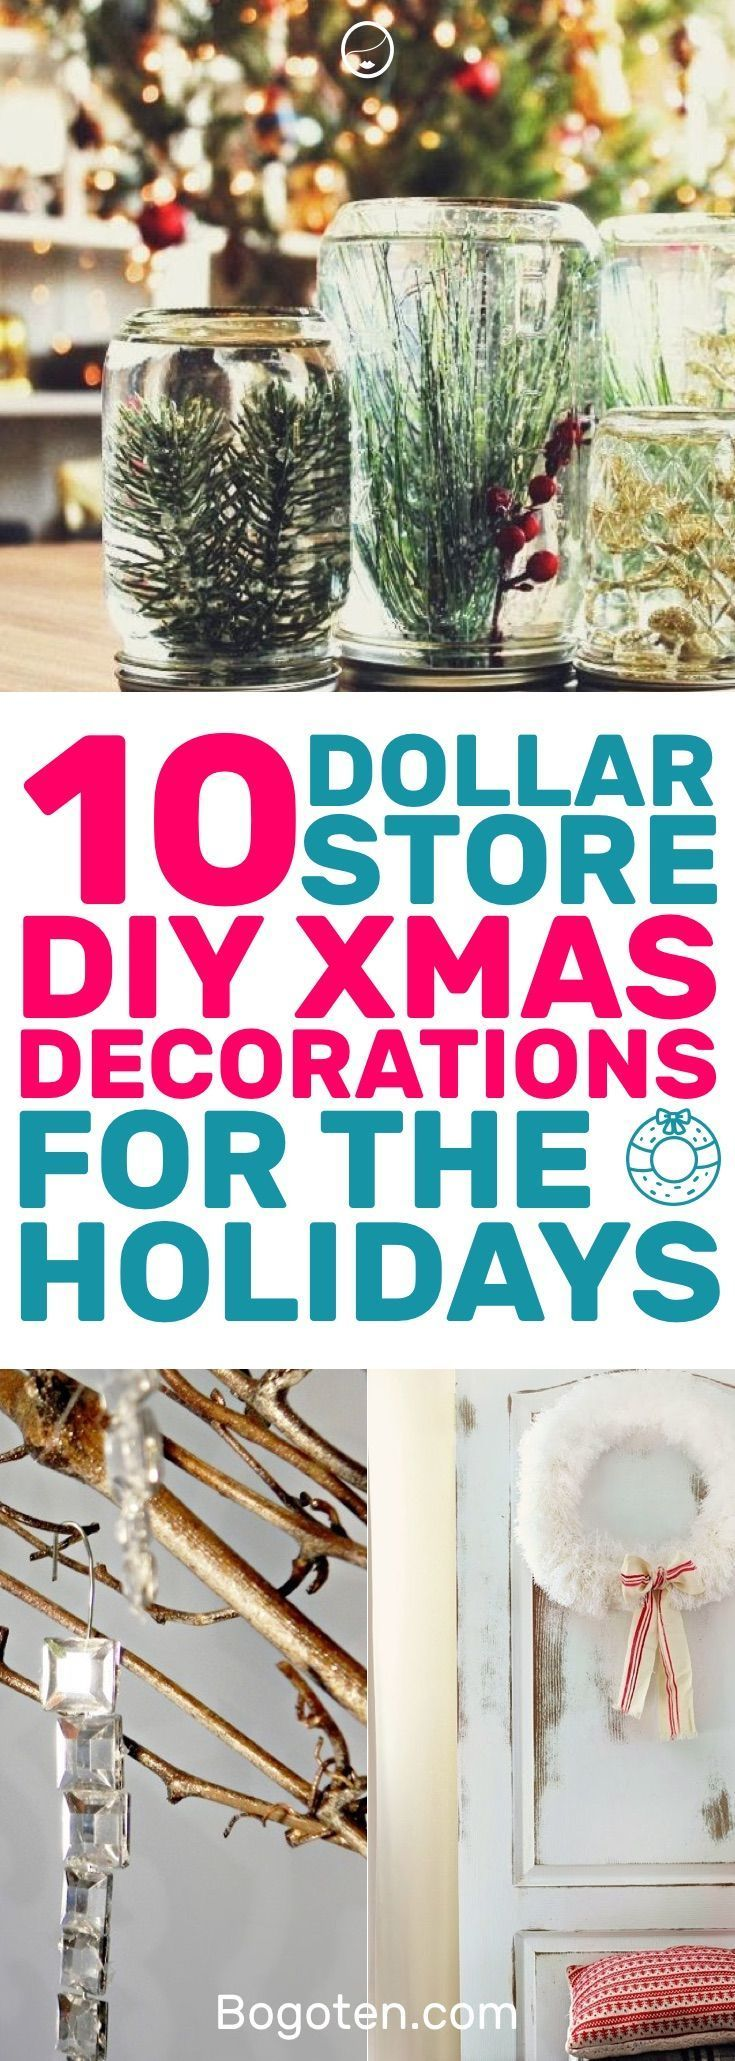 Who doesn't want to decorate their home for the holidays? These DIY Dollar Store home decor ideas will get you festive. I love them! #HomeDecorIdeas #…